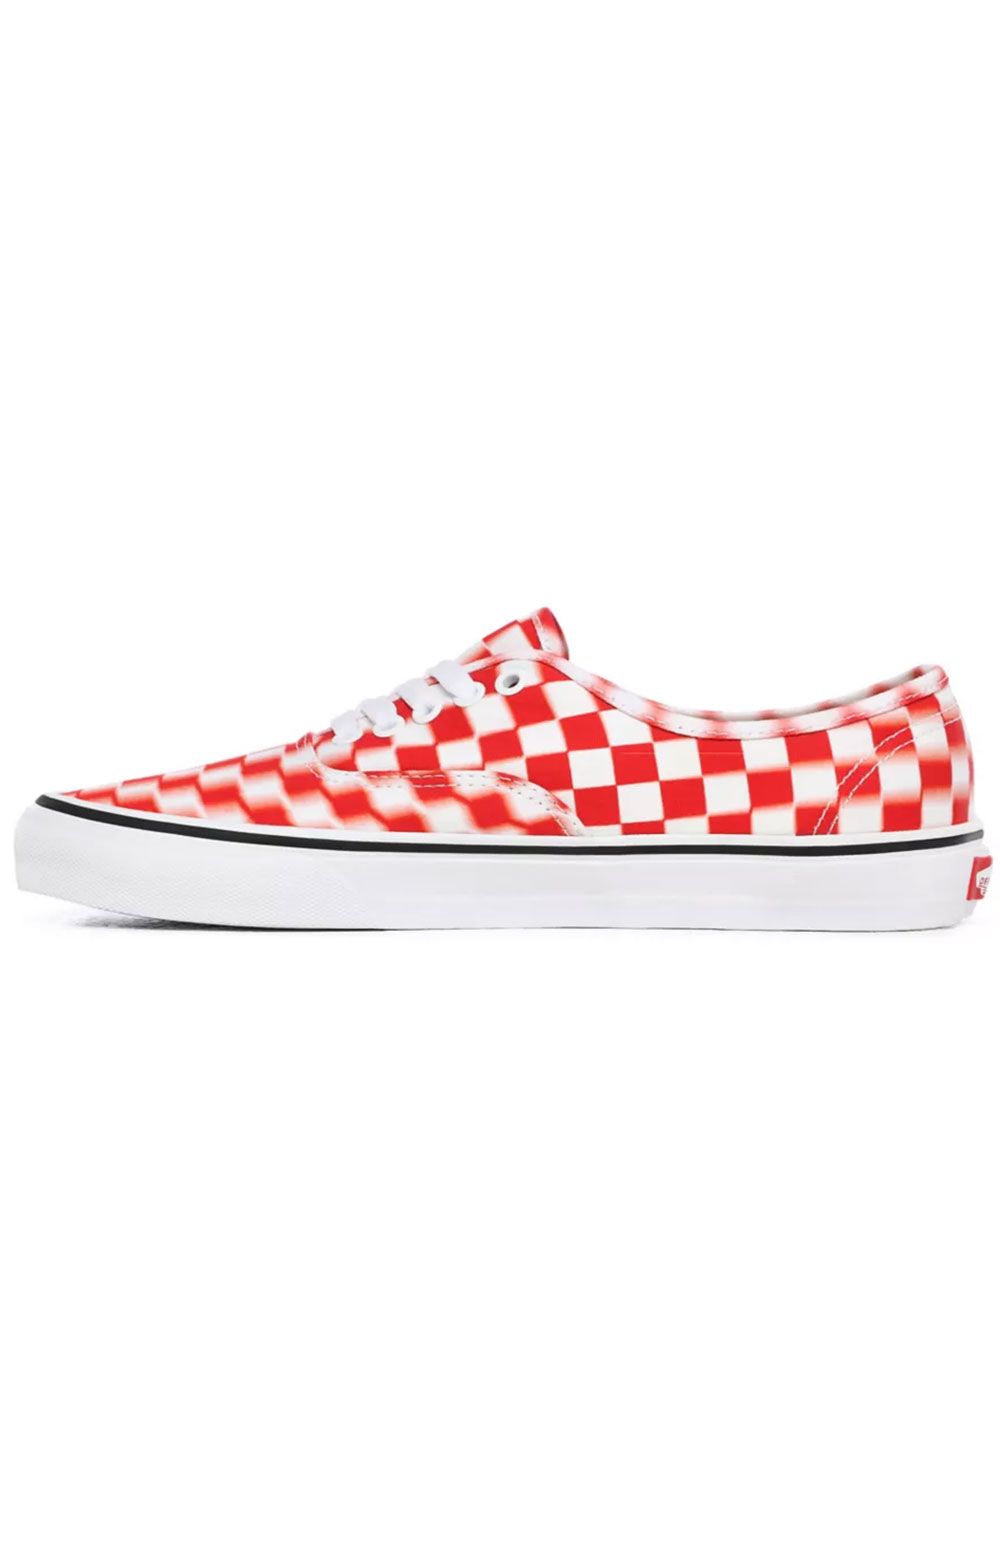 (Z5I17Z) Blur Check Authentic Shoes - True White/Red 3